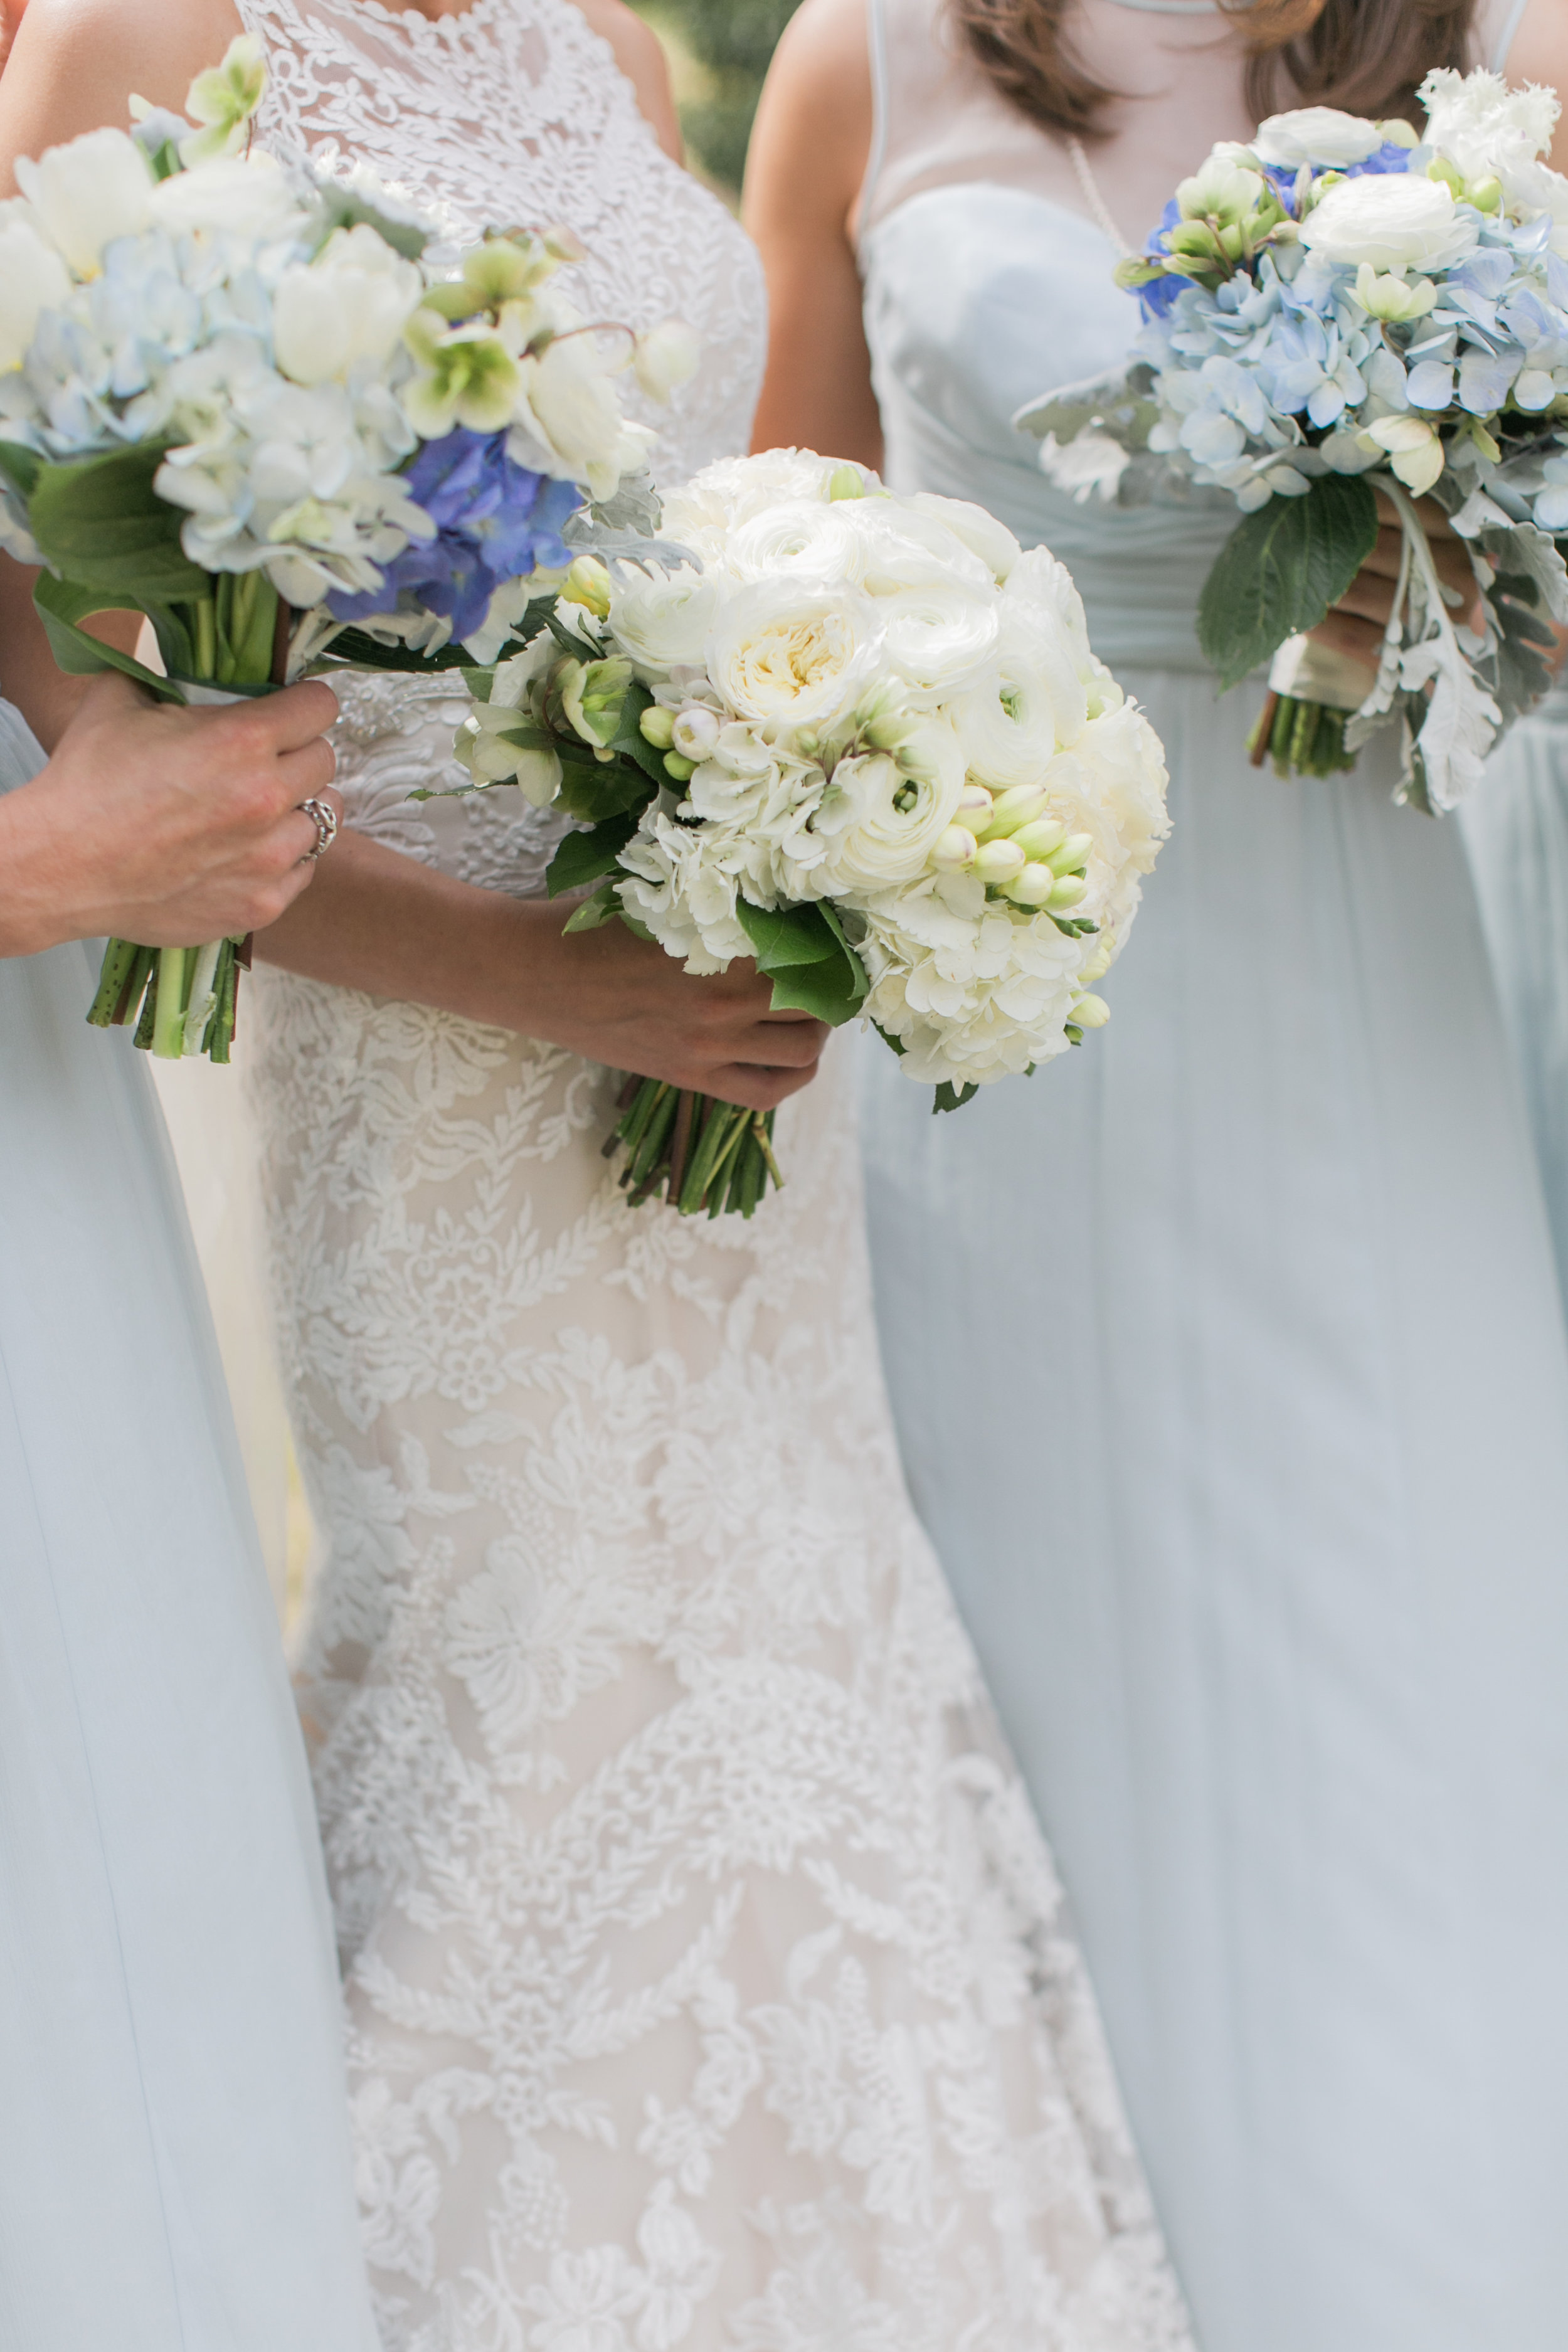 Spring bride and bridemaid bouquets